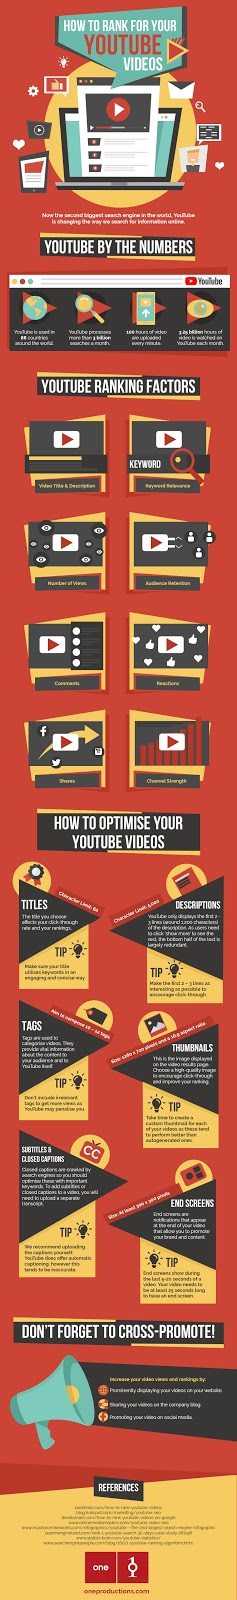 Youtube-Video-SEO-technic-infographic